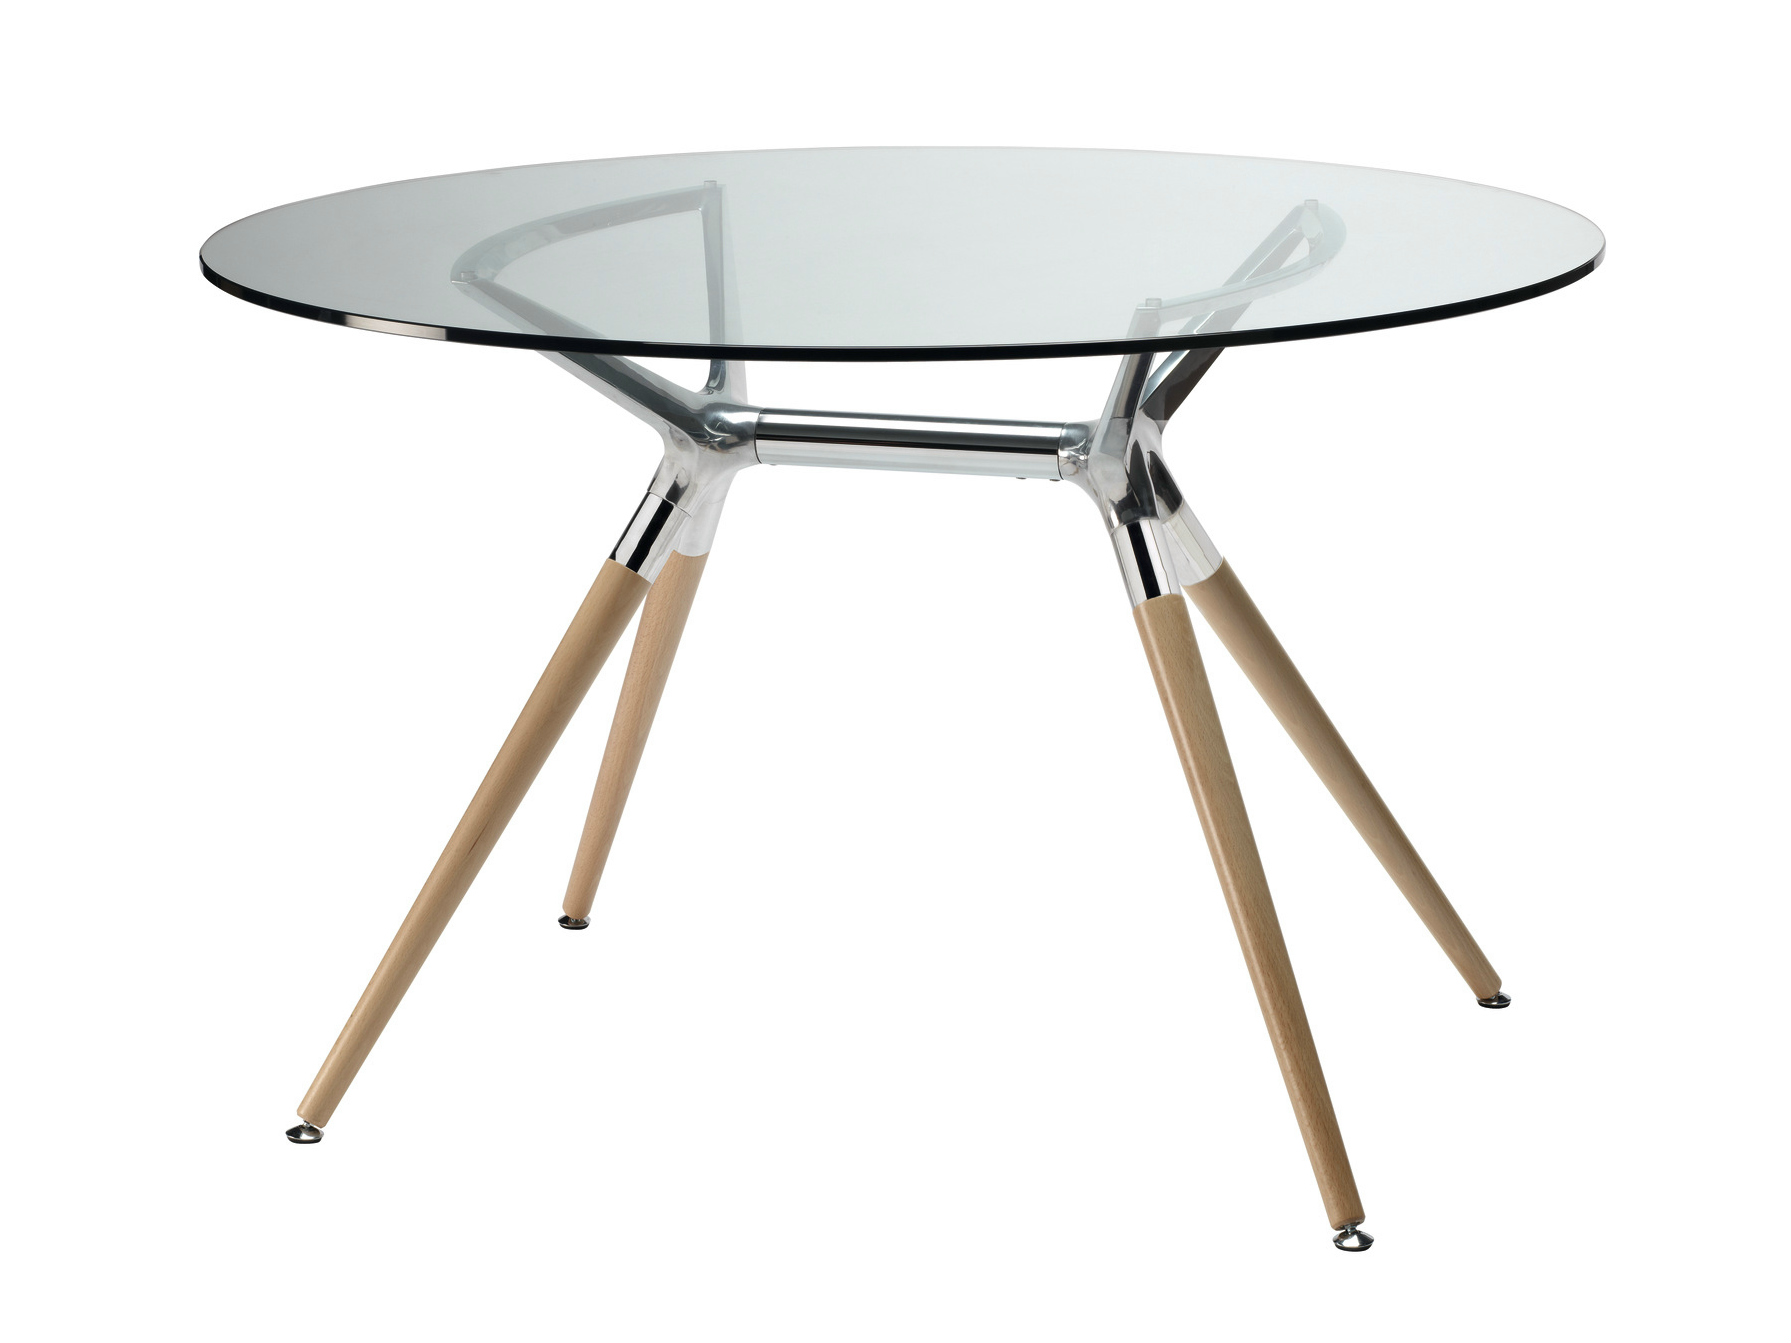 NATURAL METROPOLIS Round table by SCAB DESIGN -> Table Ronde En Verre Conforama